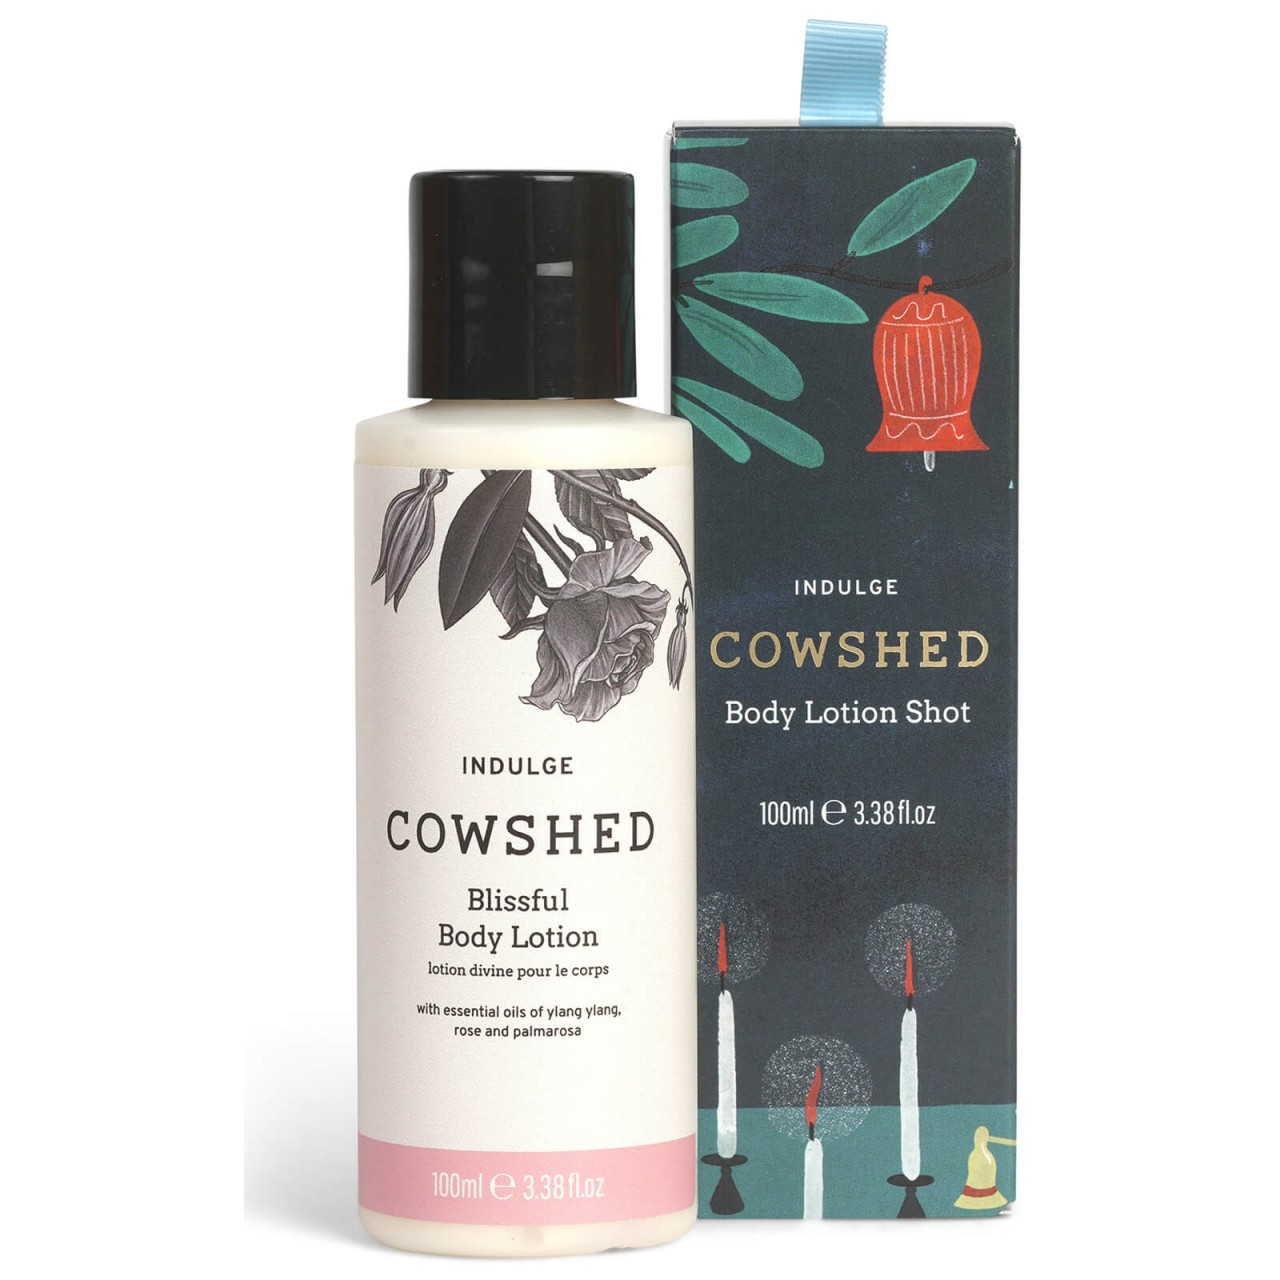 Cowshed Indulge Body Lotion Treat